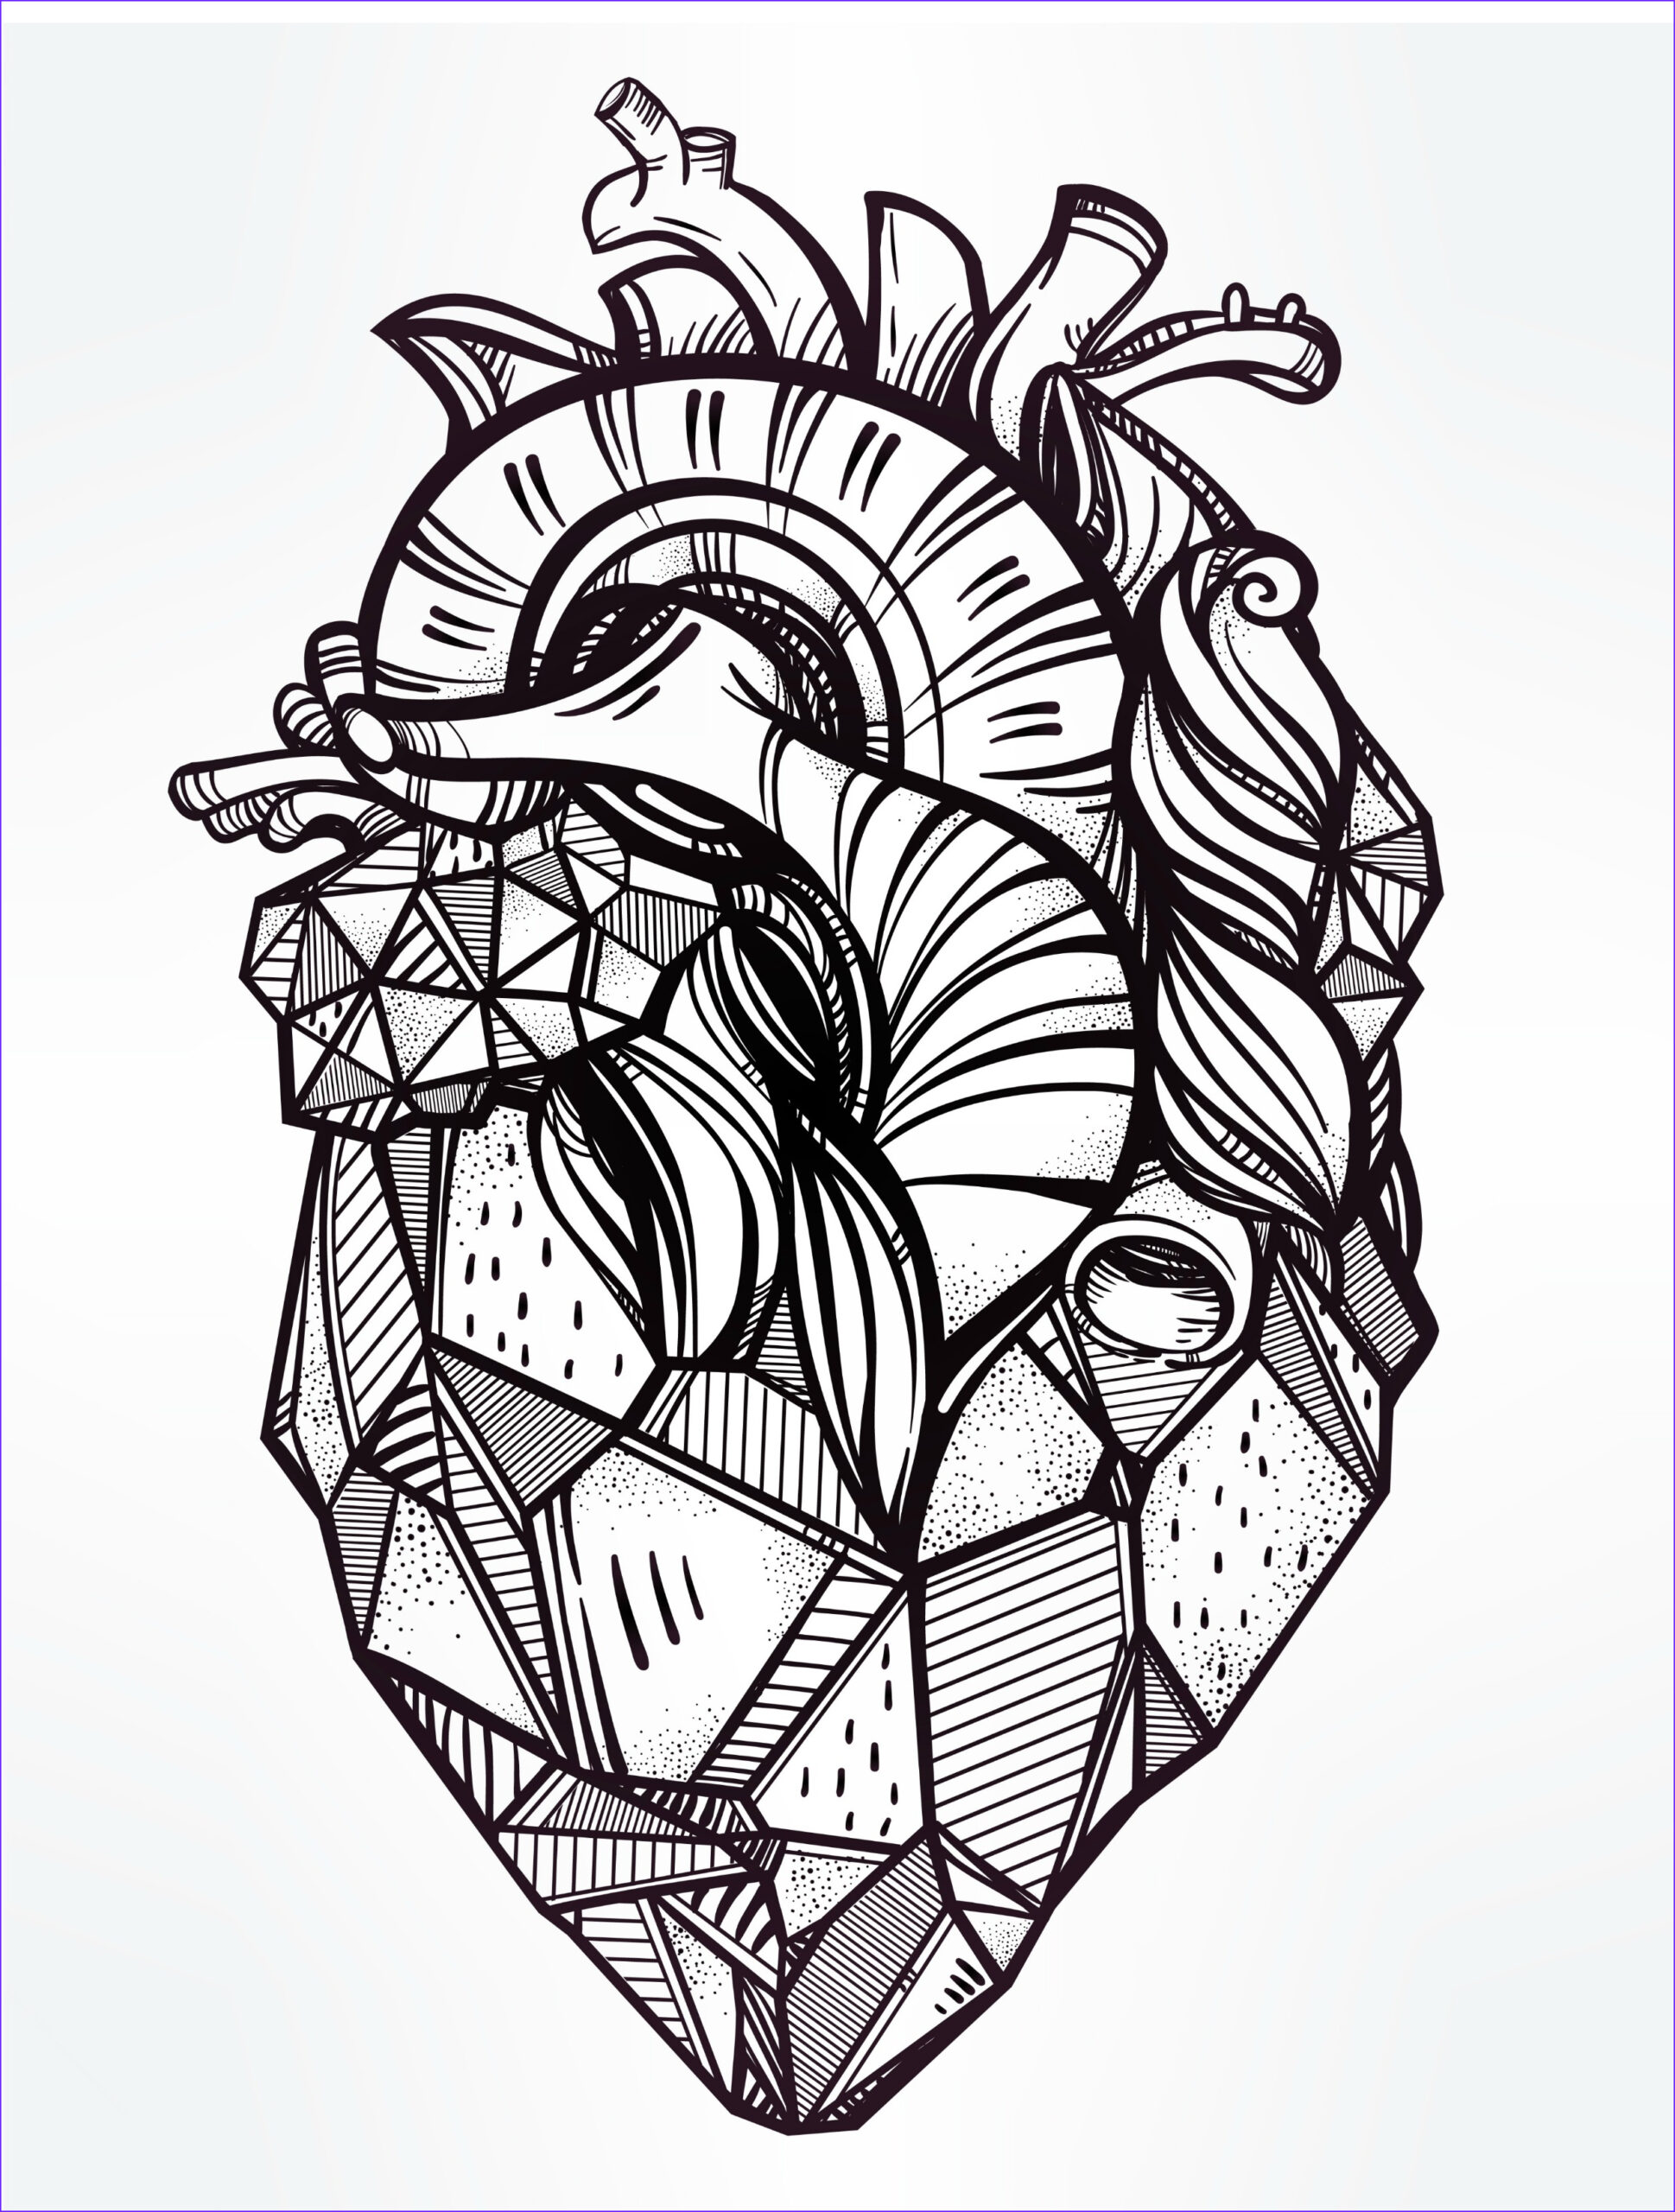 Free Coloring Pages Pdf Unique Images 20 Free Printable Valentines Adult Coloring Pages Nerdy